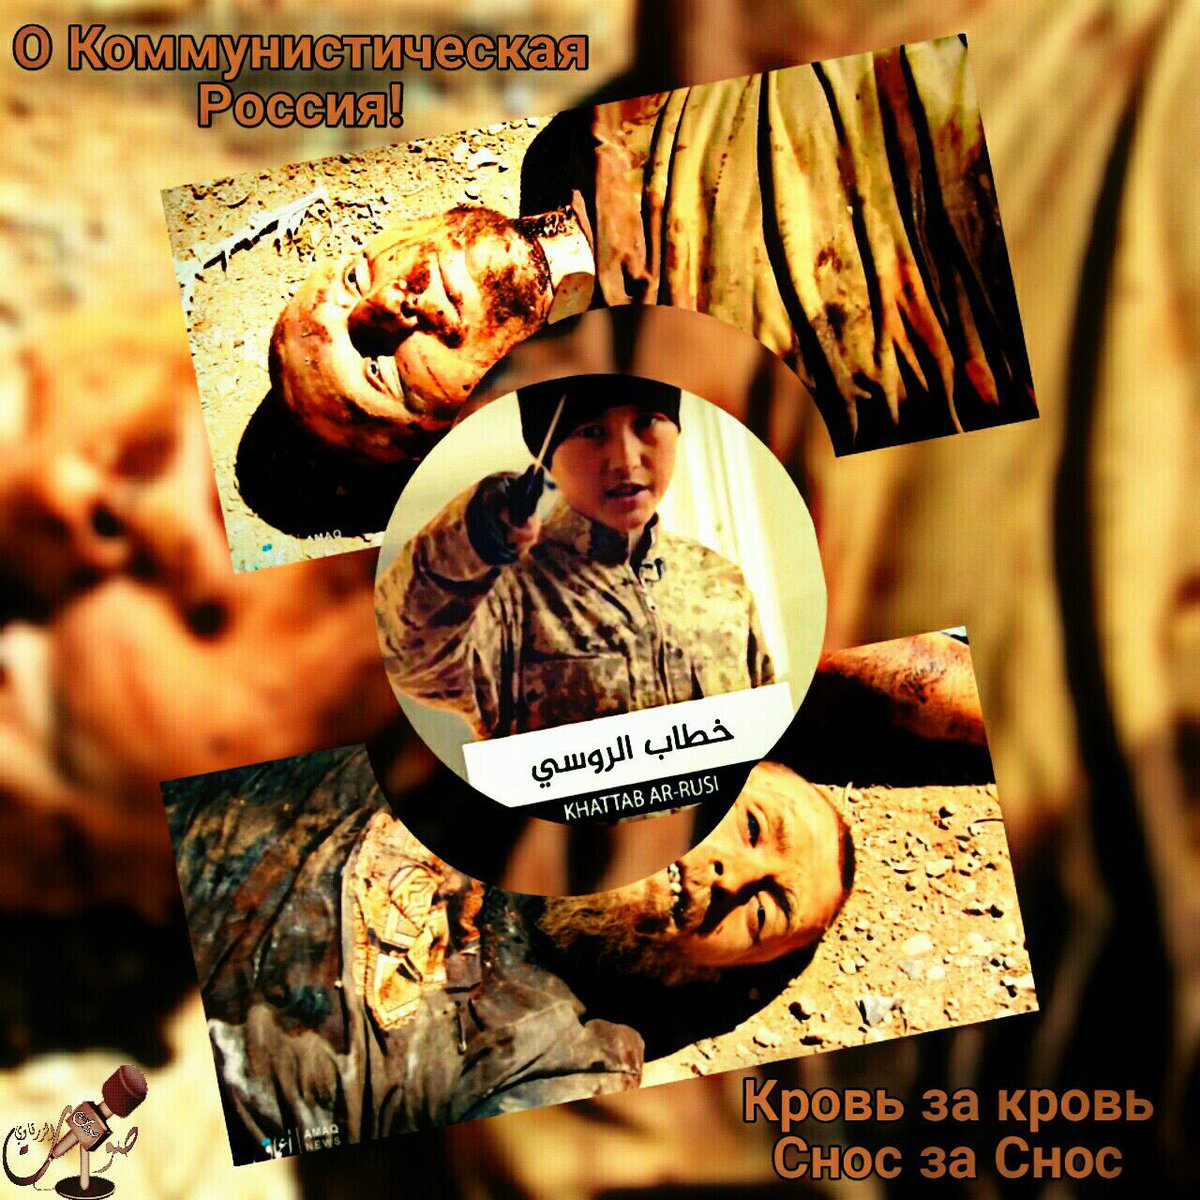 And while #Amaq proudly show images of dead Russian soldiers just now, supporters quickly share national based UG propaganda with it <br>http://pic.twitter.com/M6QRd75ARo